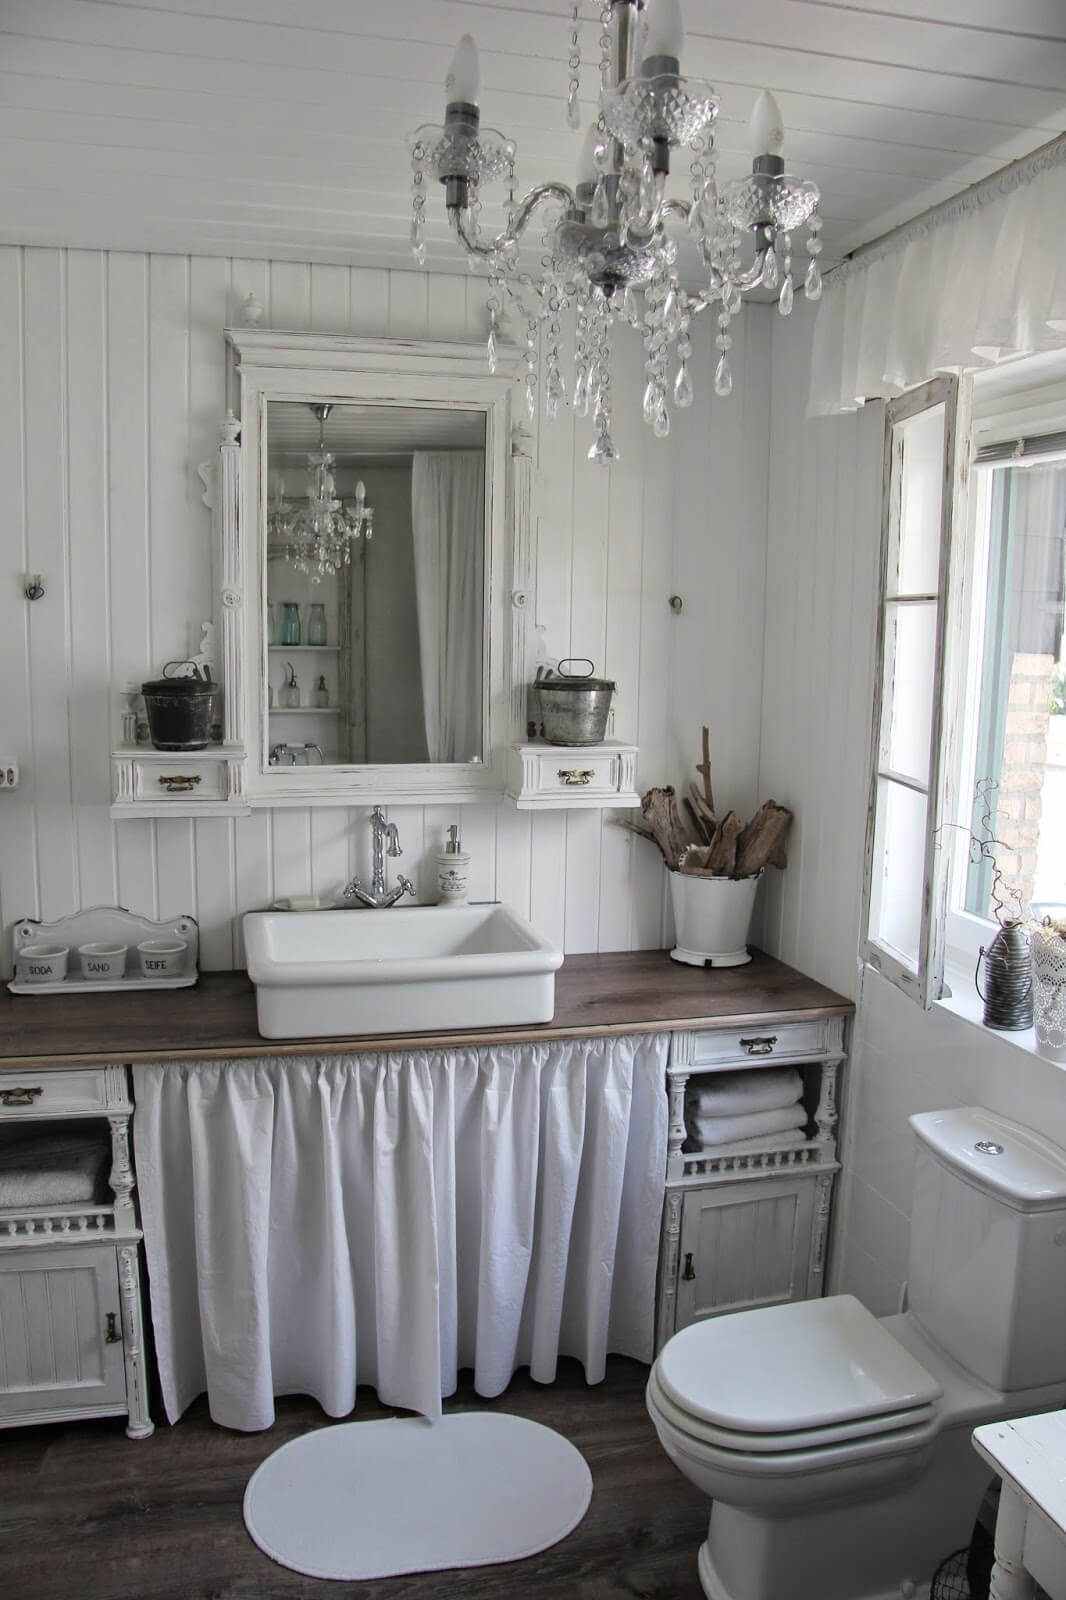 Shabby Chic Bathroom Design with Ruffle Details